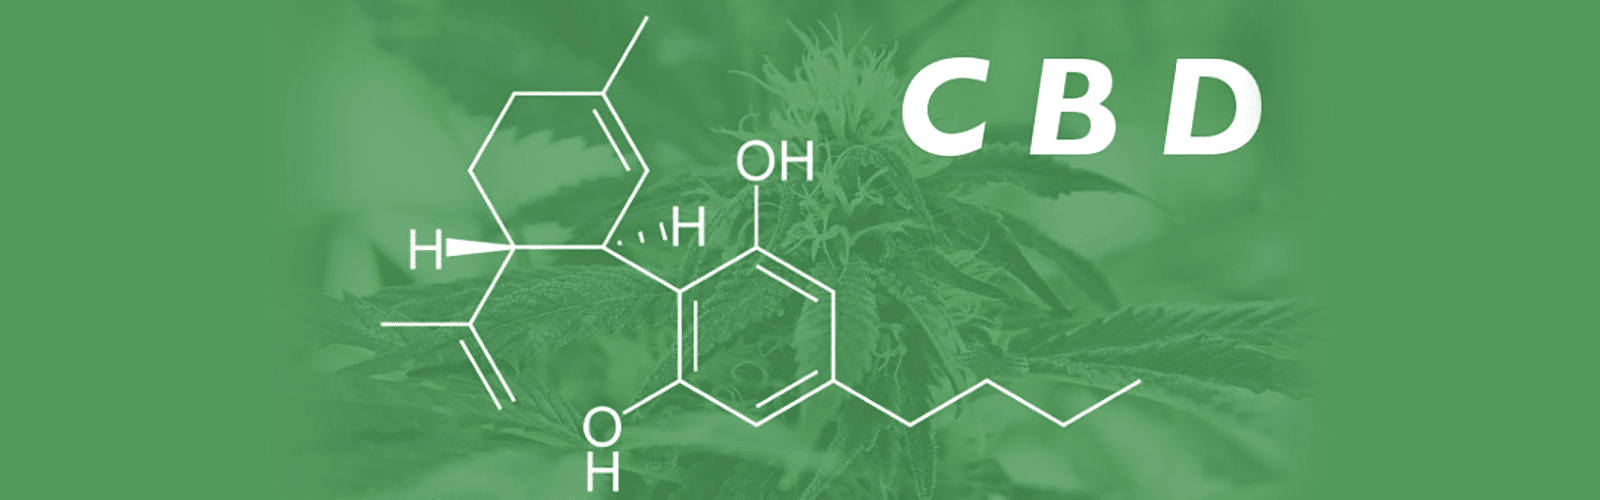 what is cbd oil used for